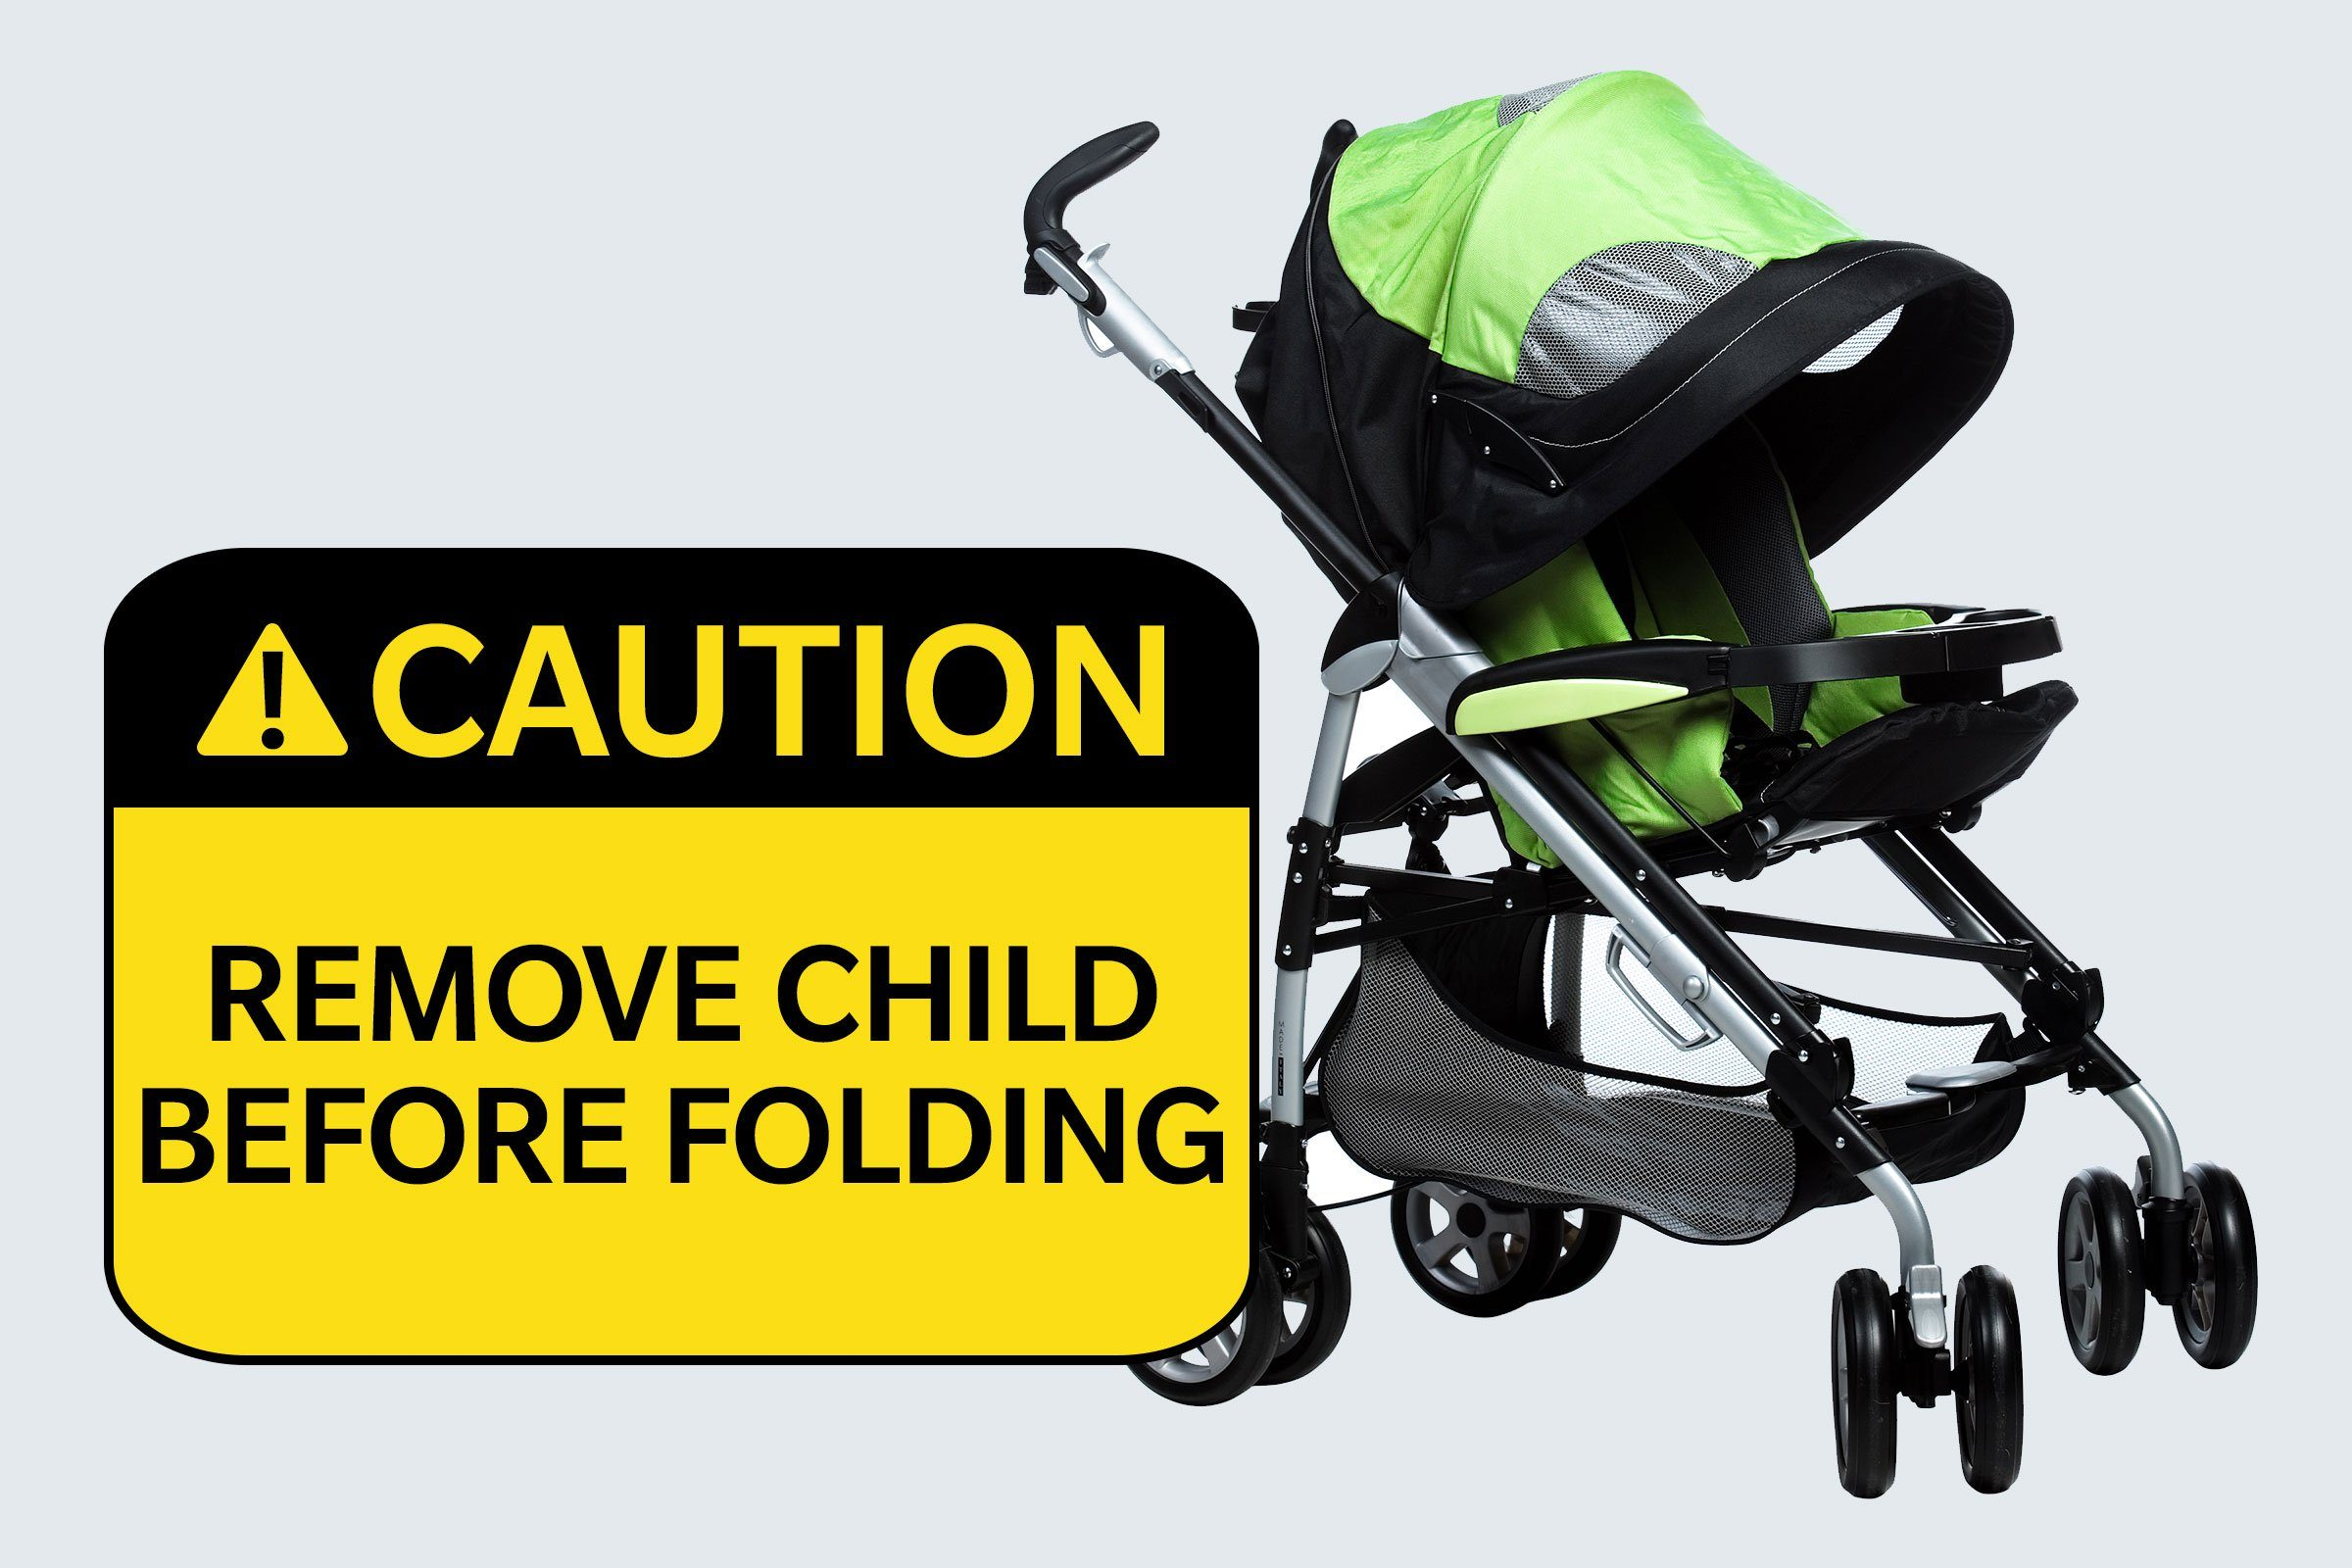 stroller. caution: remove child before folding.